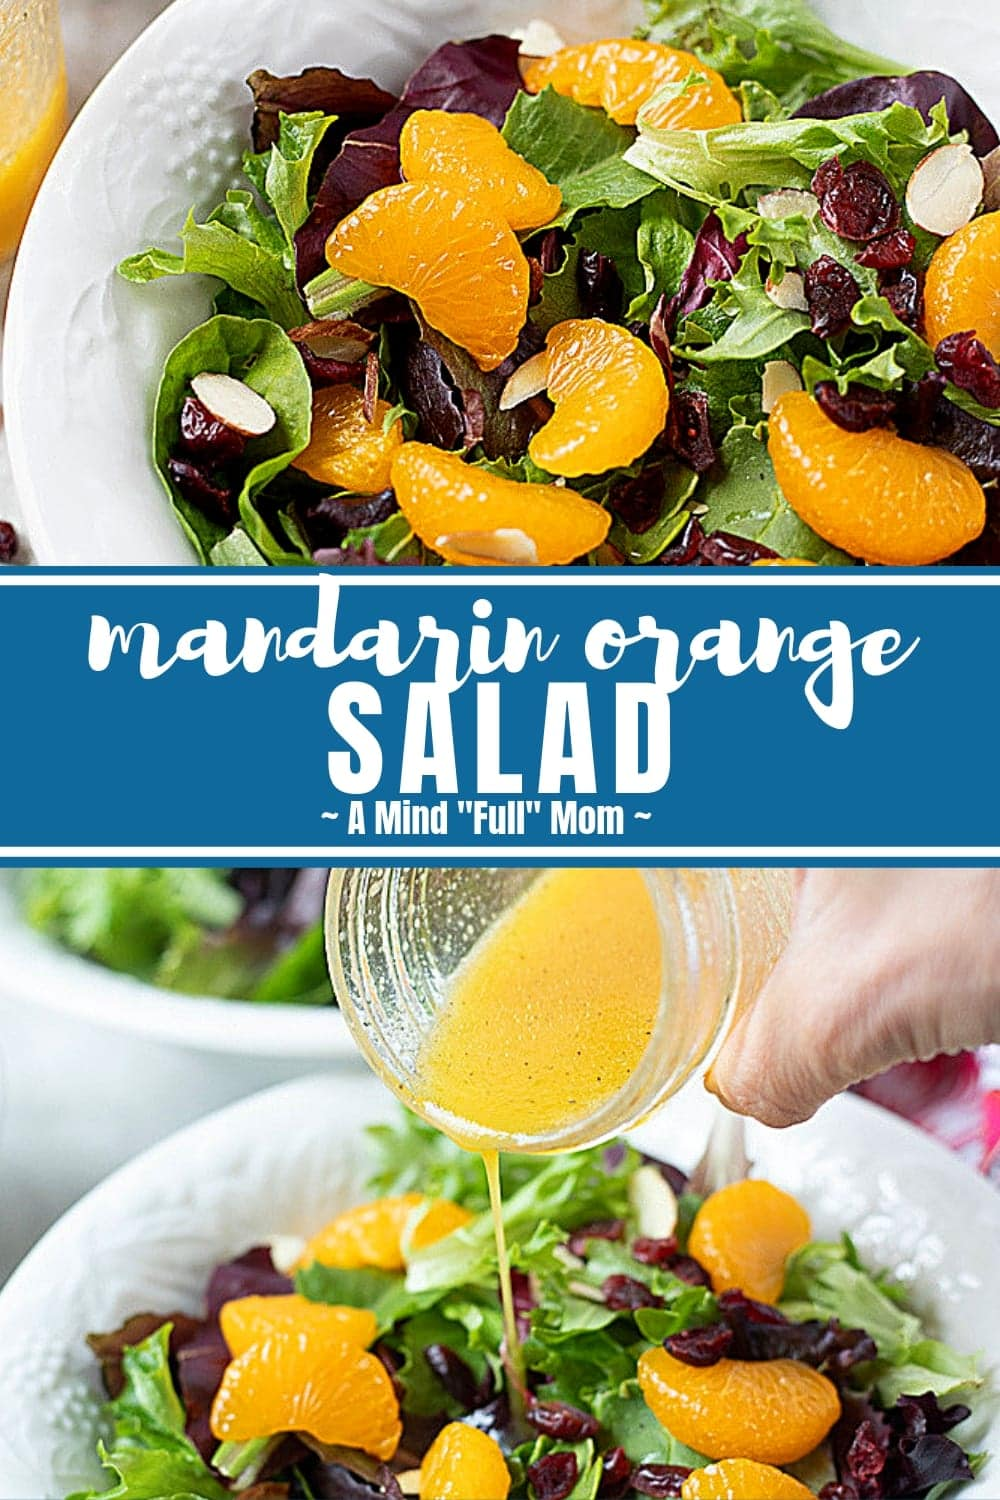 Mandarin Orange Salad is a bright and fresh side salad that is bursting with flavor! Made with tender spring mix, sweet mandarin oranges, almonds, cranberries and a fresh Citrus Salad Dressing, this Mandarin Orange Salad is DELICIOUS! #salad